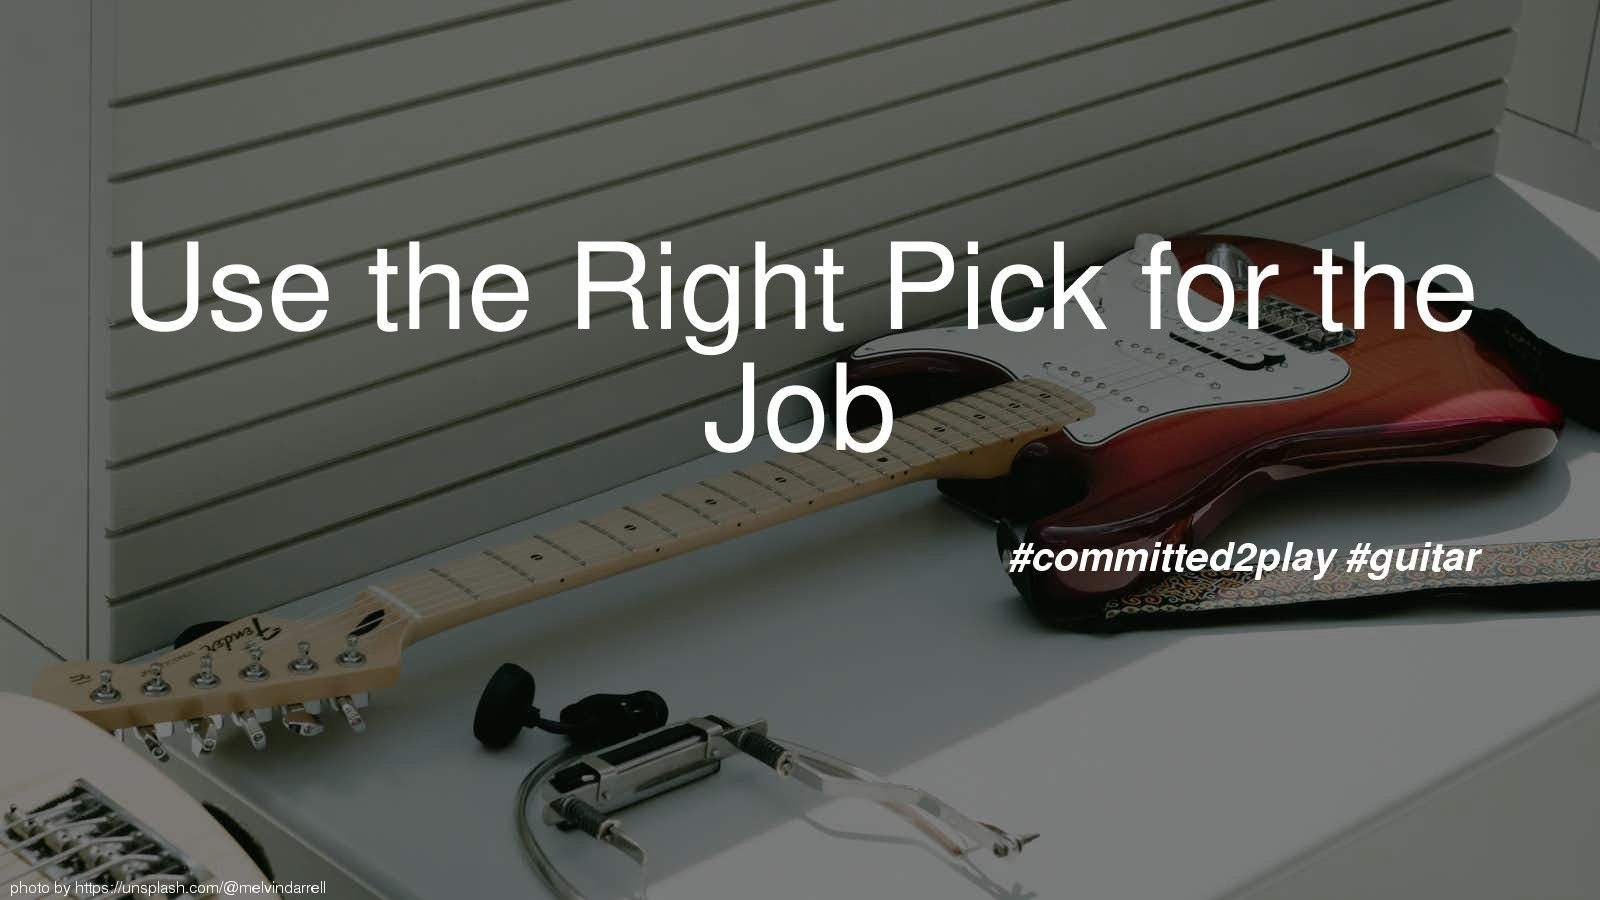 Use the Right Pick for the Job